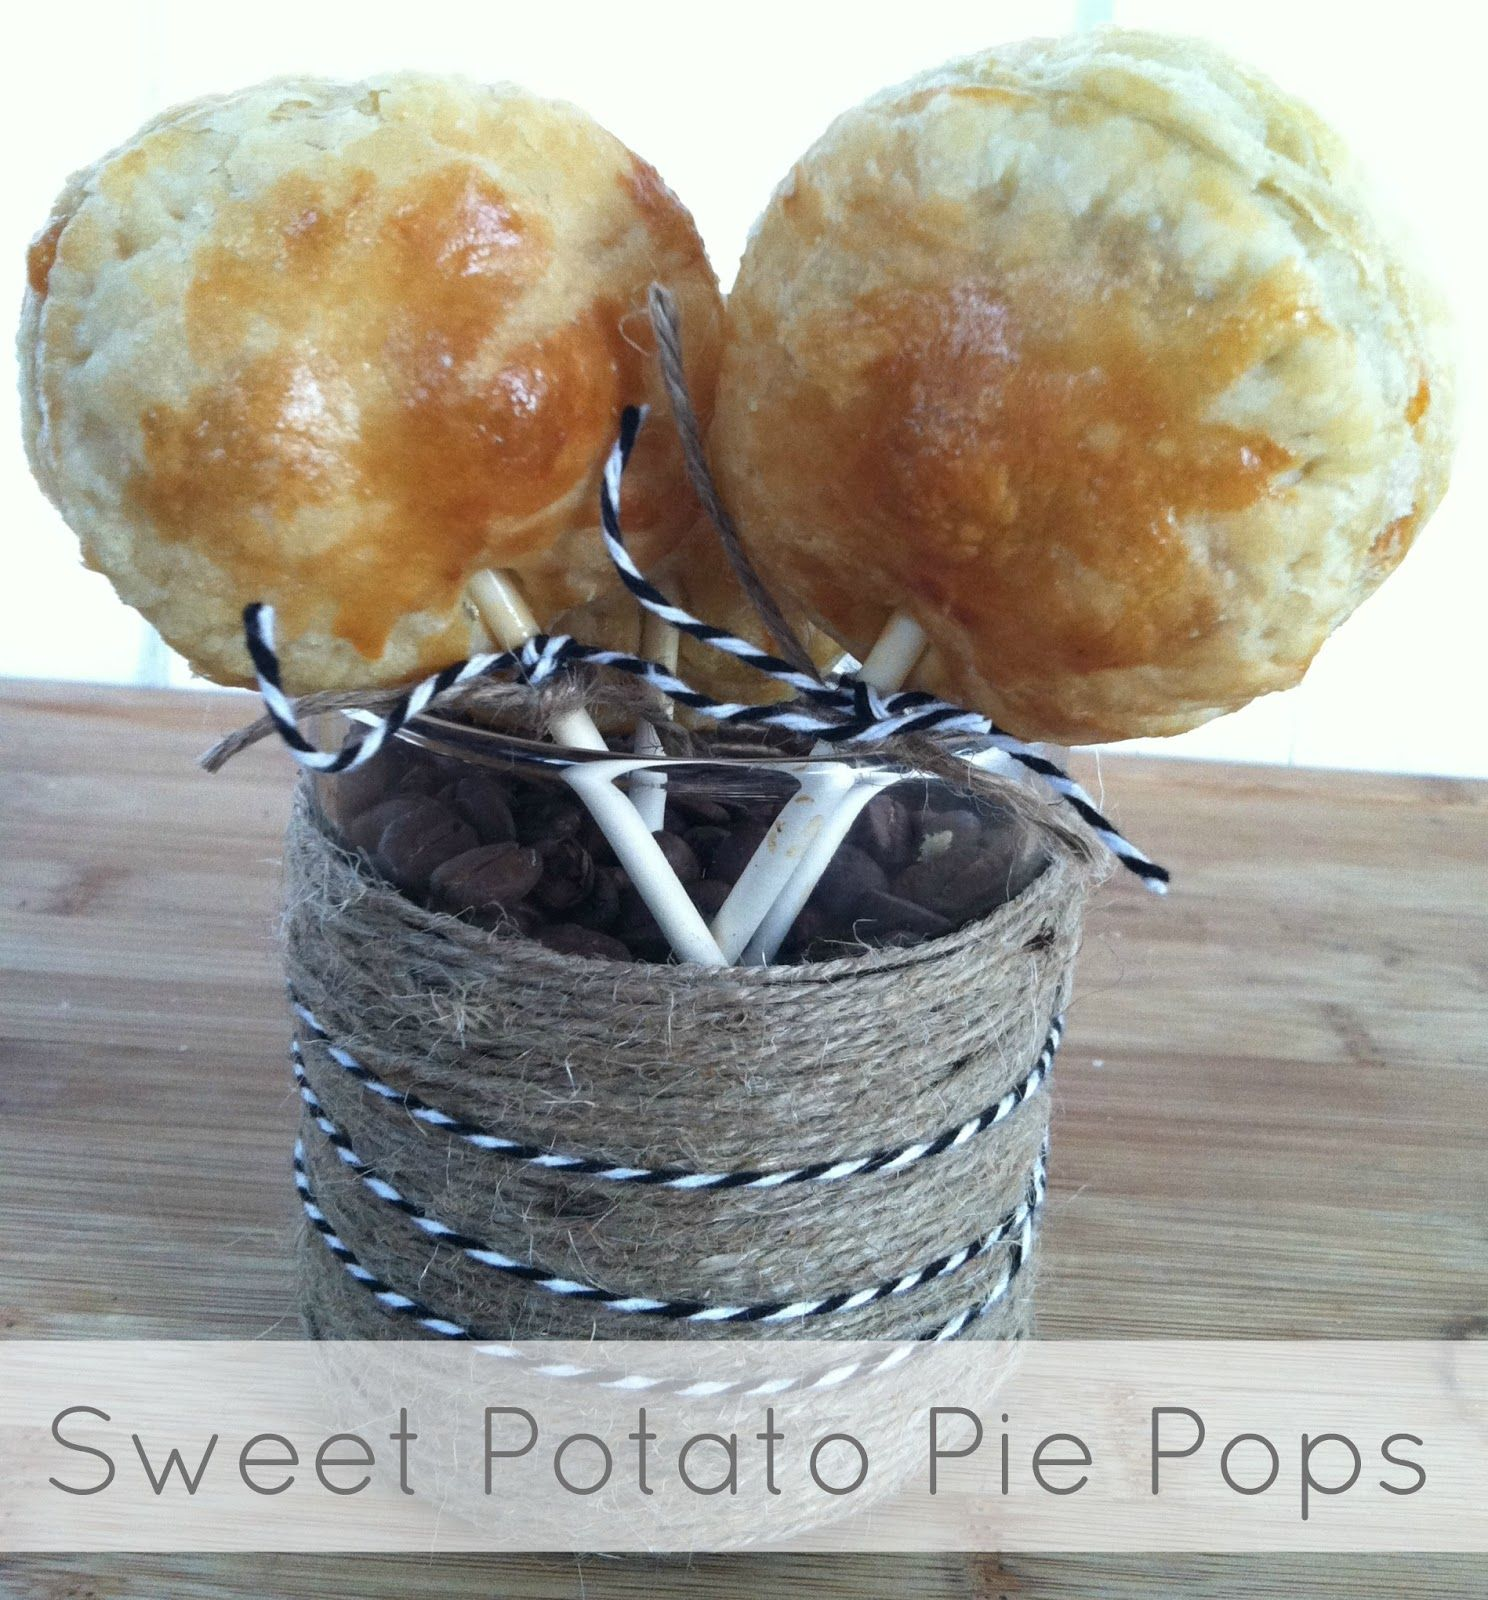 Sweet Potato Pie Pops Recipe- - Little Miss Momma